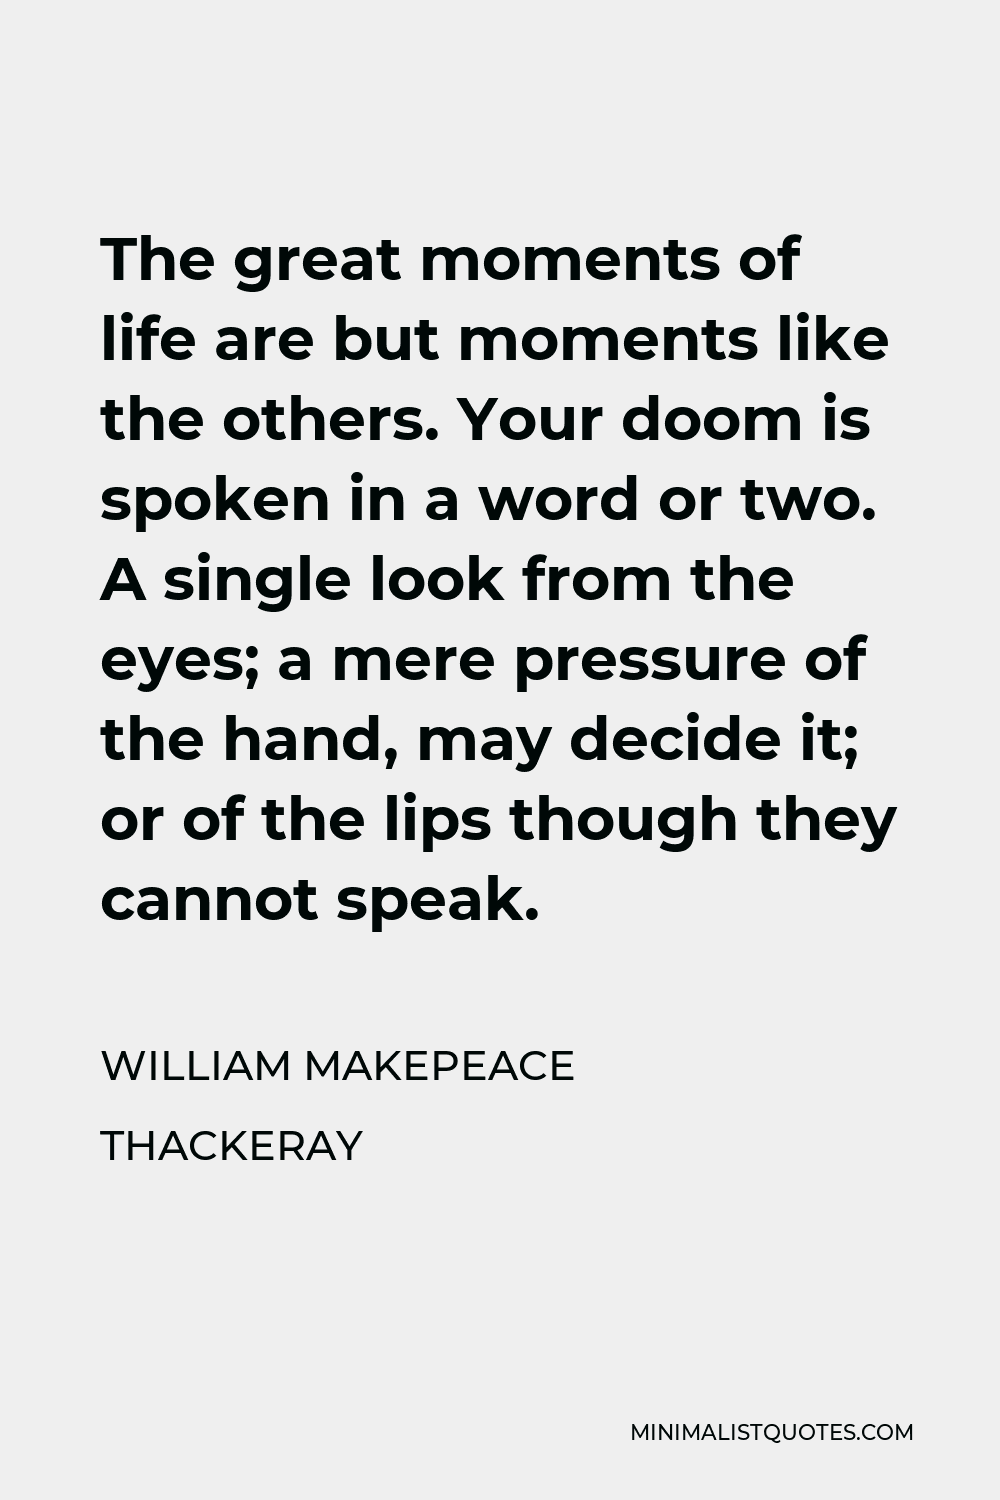 William Makepeace Thackeray Quote - The great moments of life are but moments like the others. Your doom is spoken in a word or two. A single look from the eyes; a mere pressure of the hand, may decide it; or of the lips though they cannot speak.